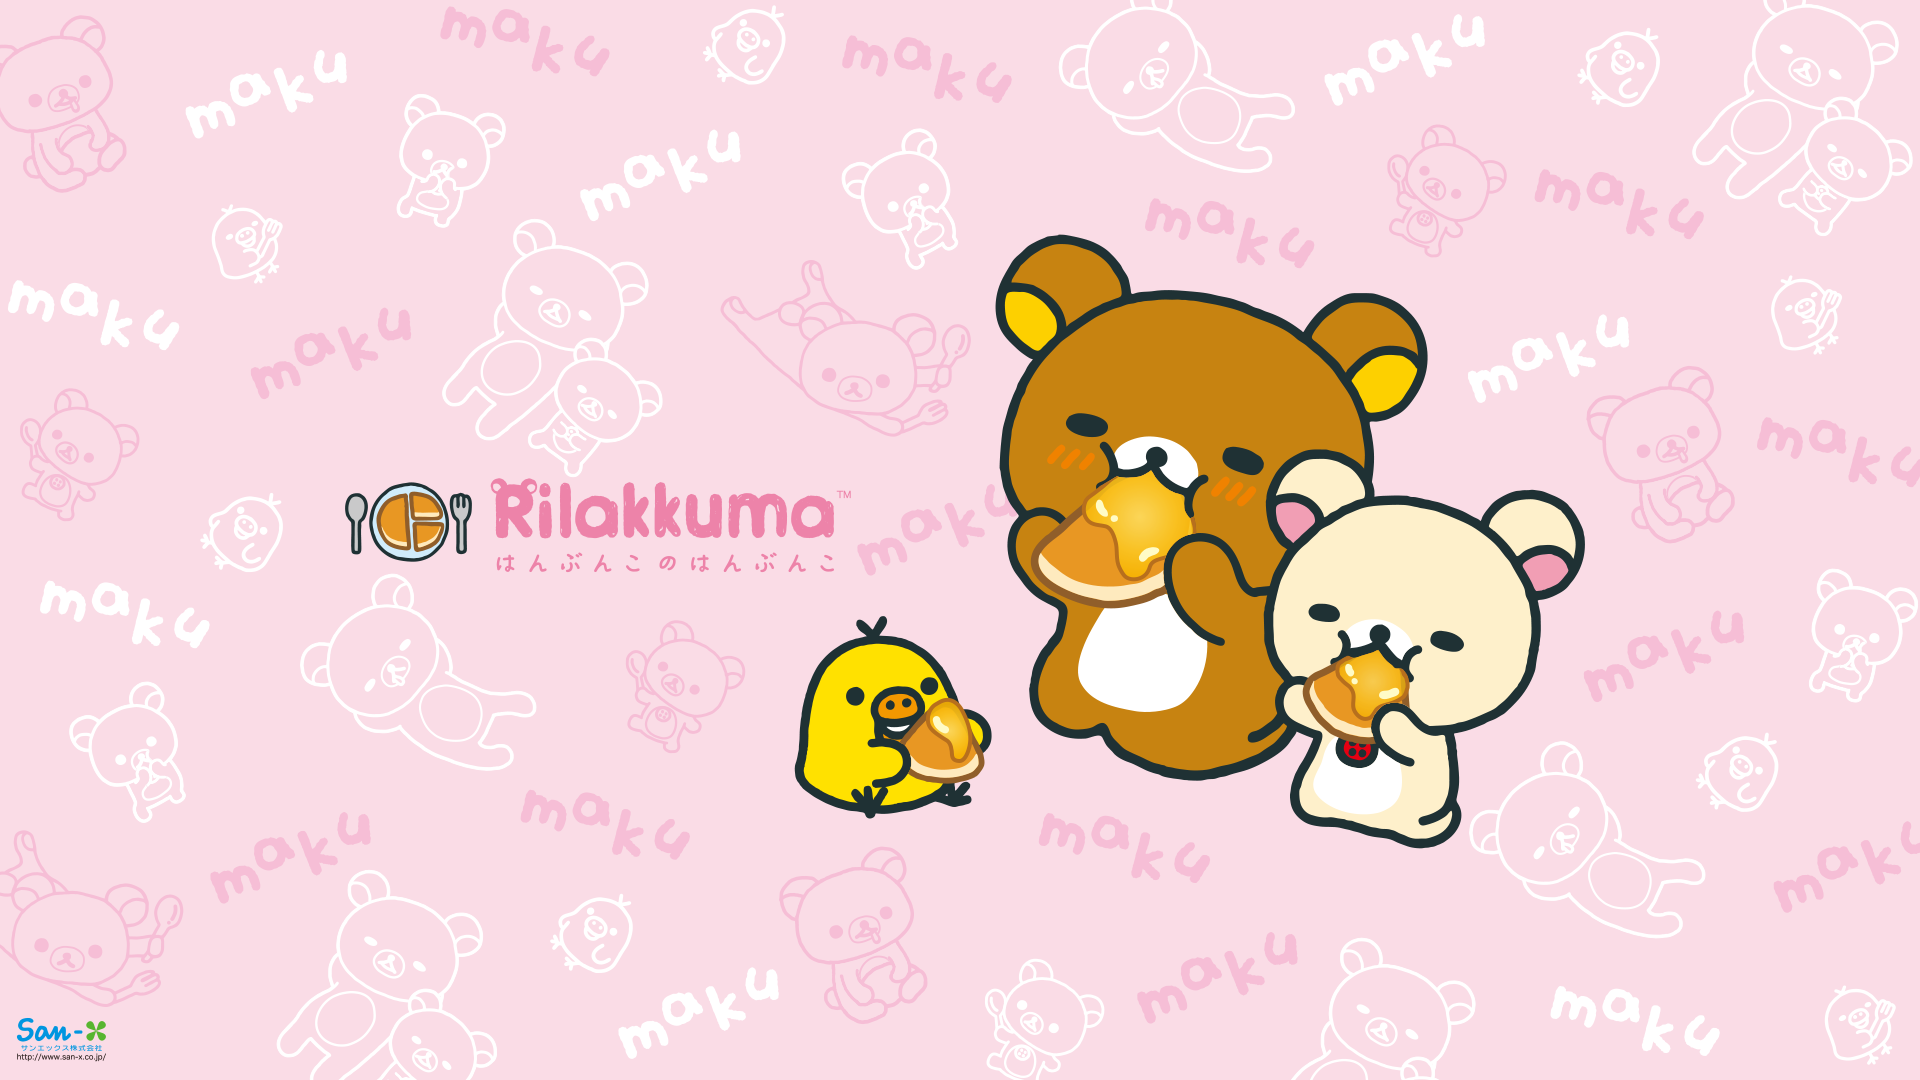 rilakkuma wallpaper january - photo #43